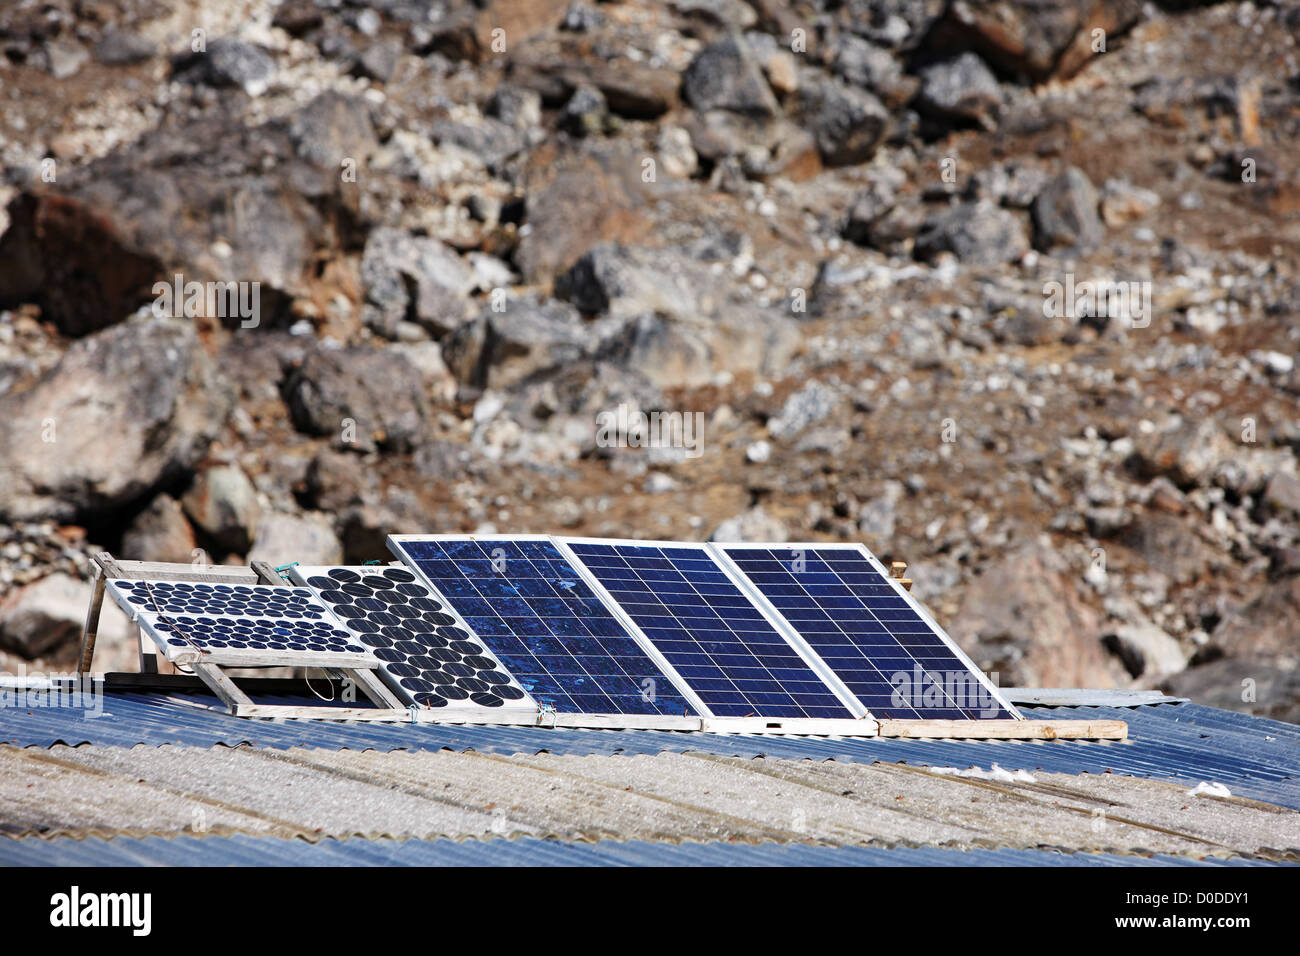 Solar photovoltaic panels at Phulangkarpo, in the Mount Everest Region of Nepal - Stock Image